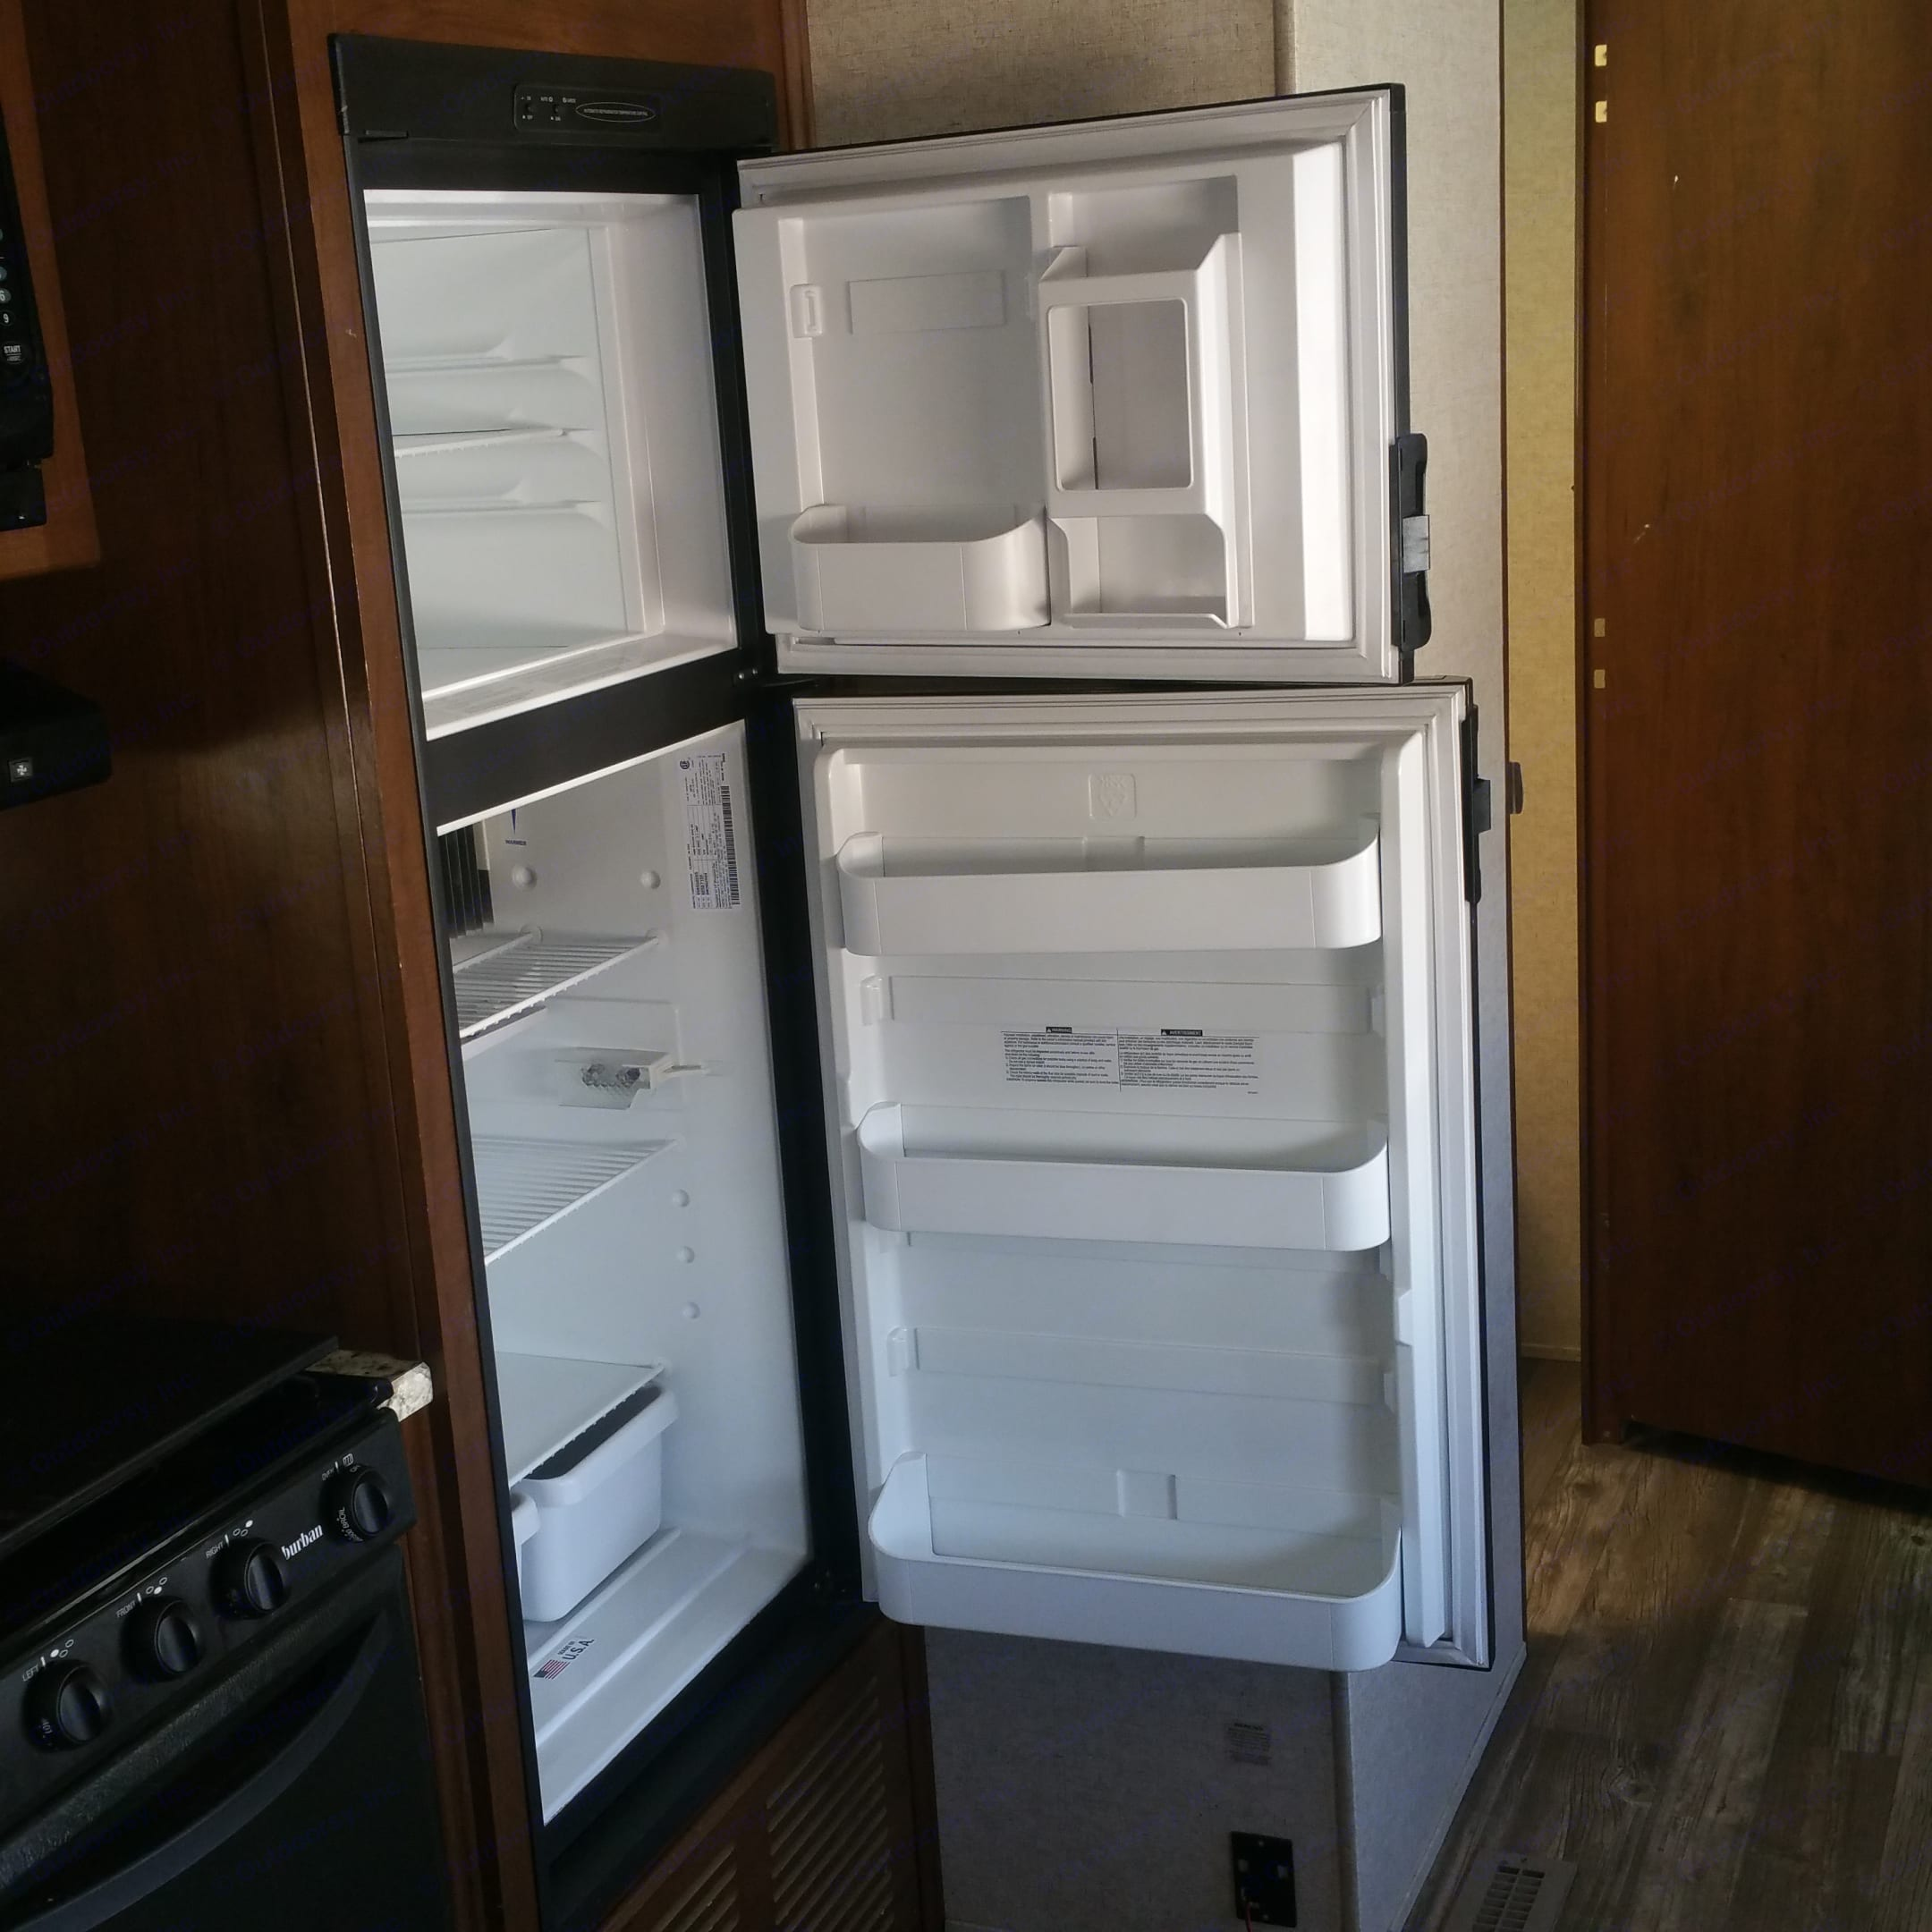 Opened refrigerator, ready for your food and drinks. Heartland Trail Runner 2016